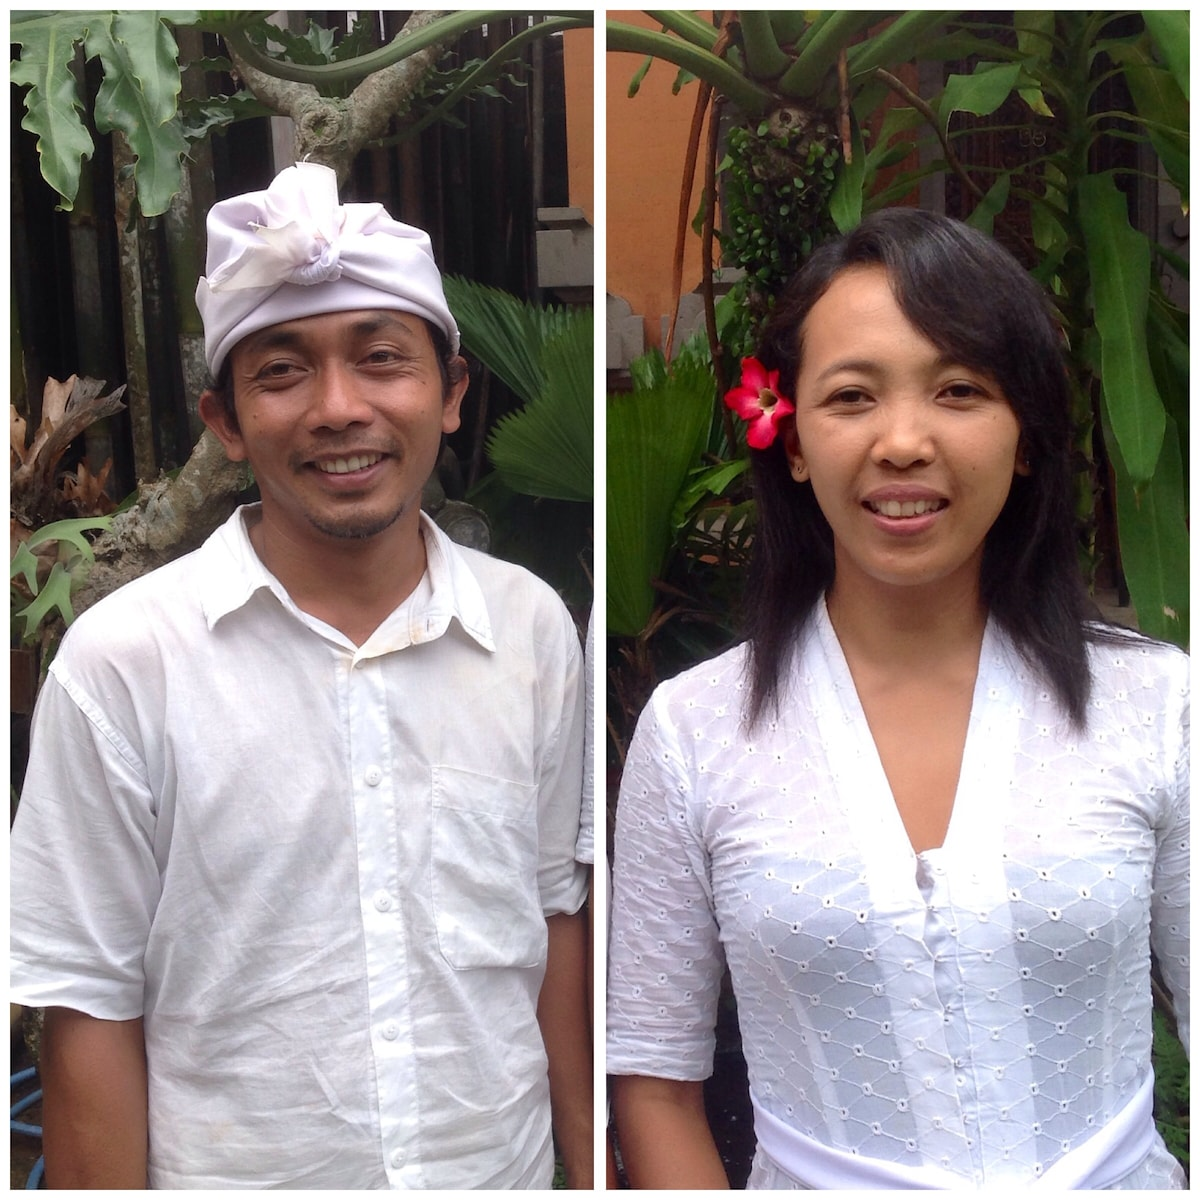 Hi! I'm Kadek, and this is my wife Ayu!  We are